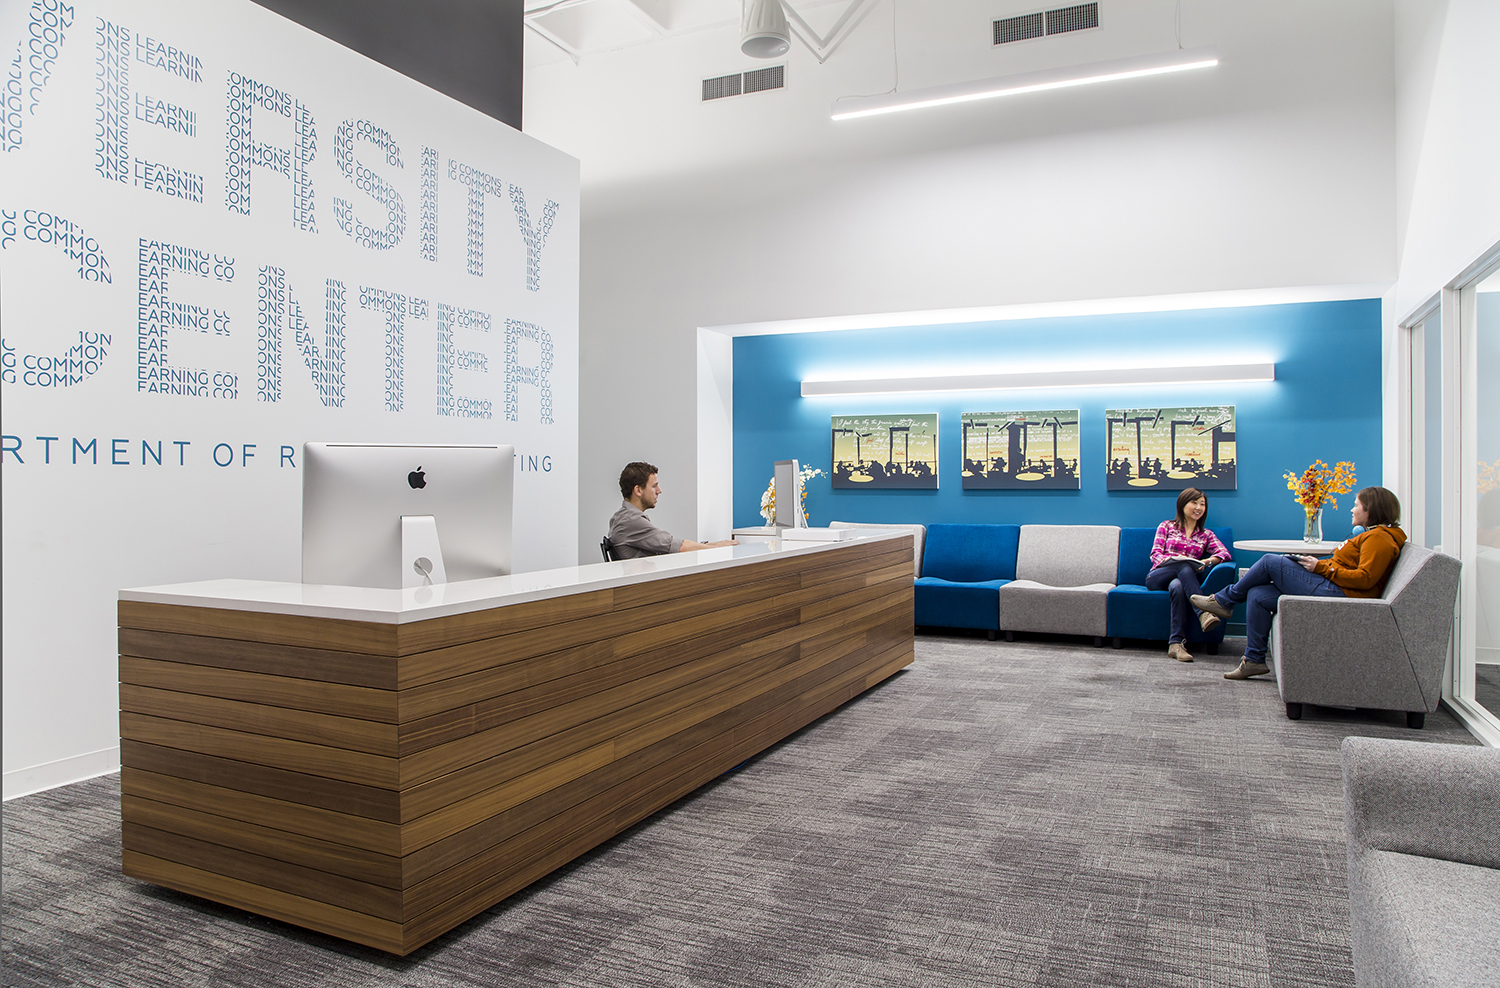 University Writing Center reception area. Image courtesy Gensler.